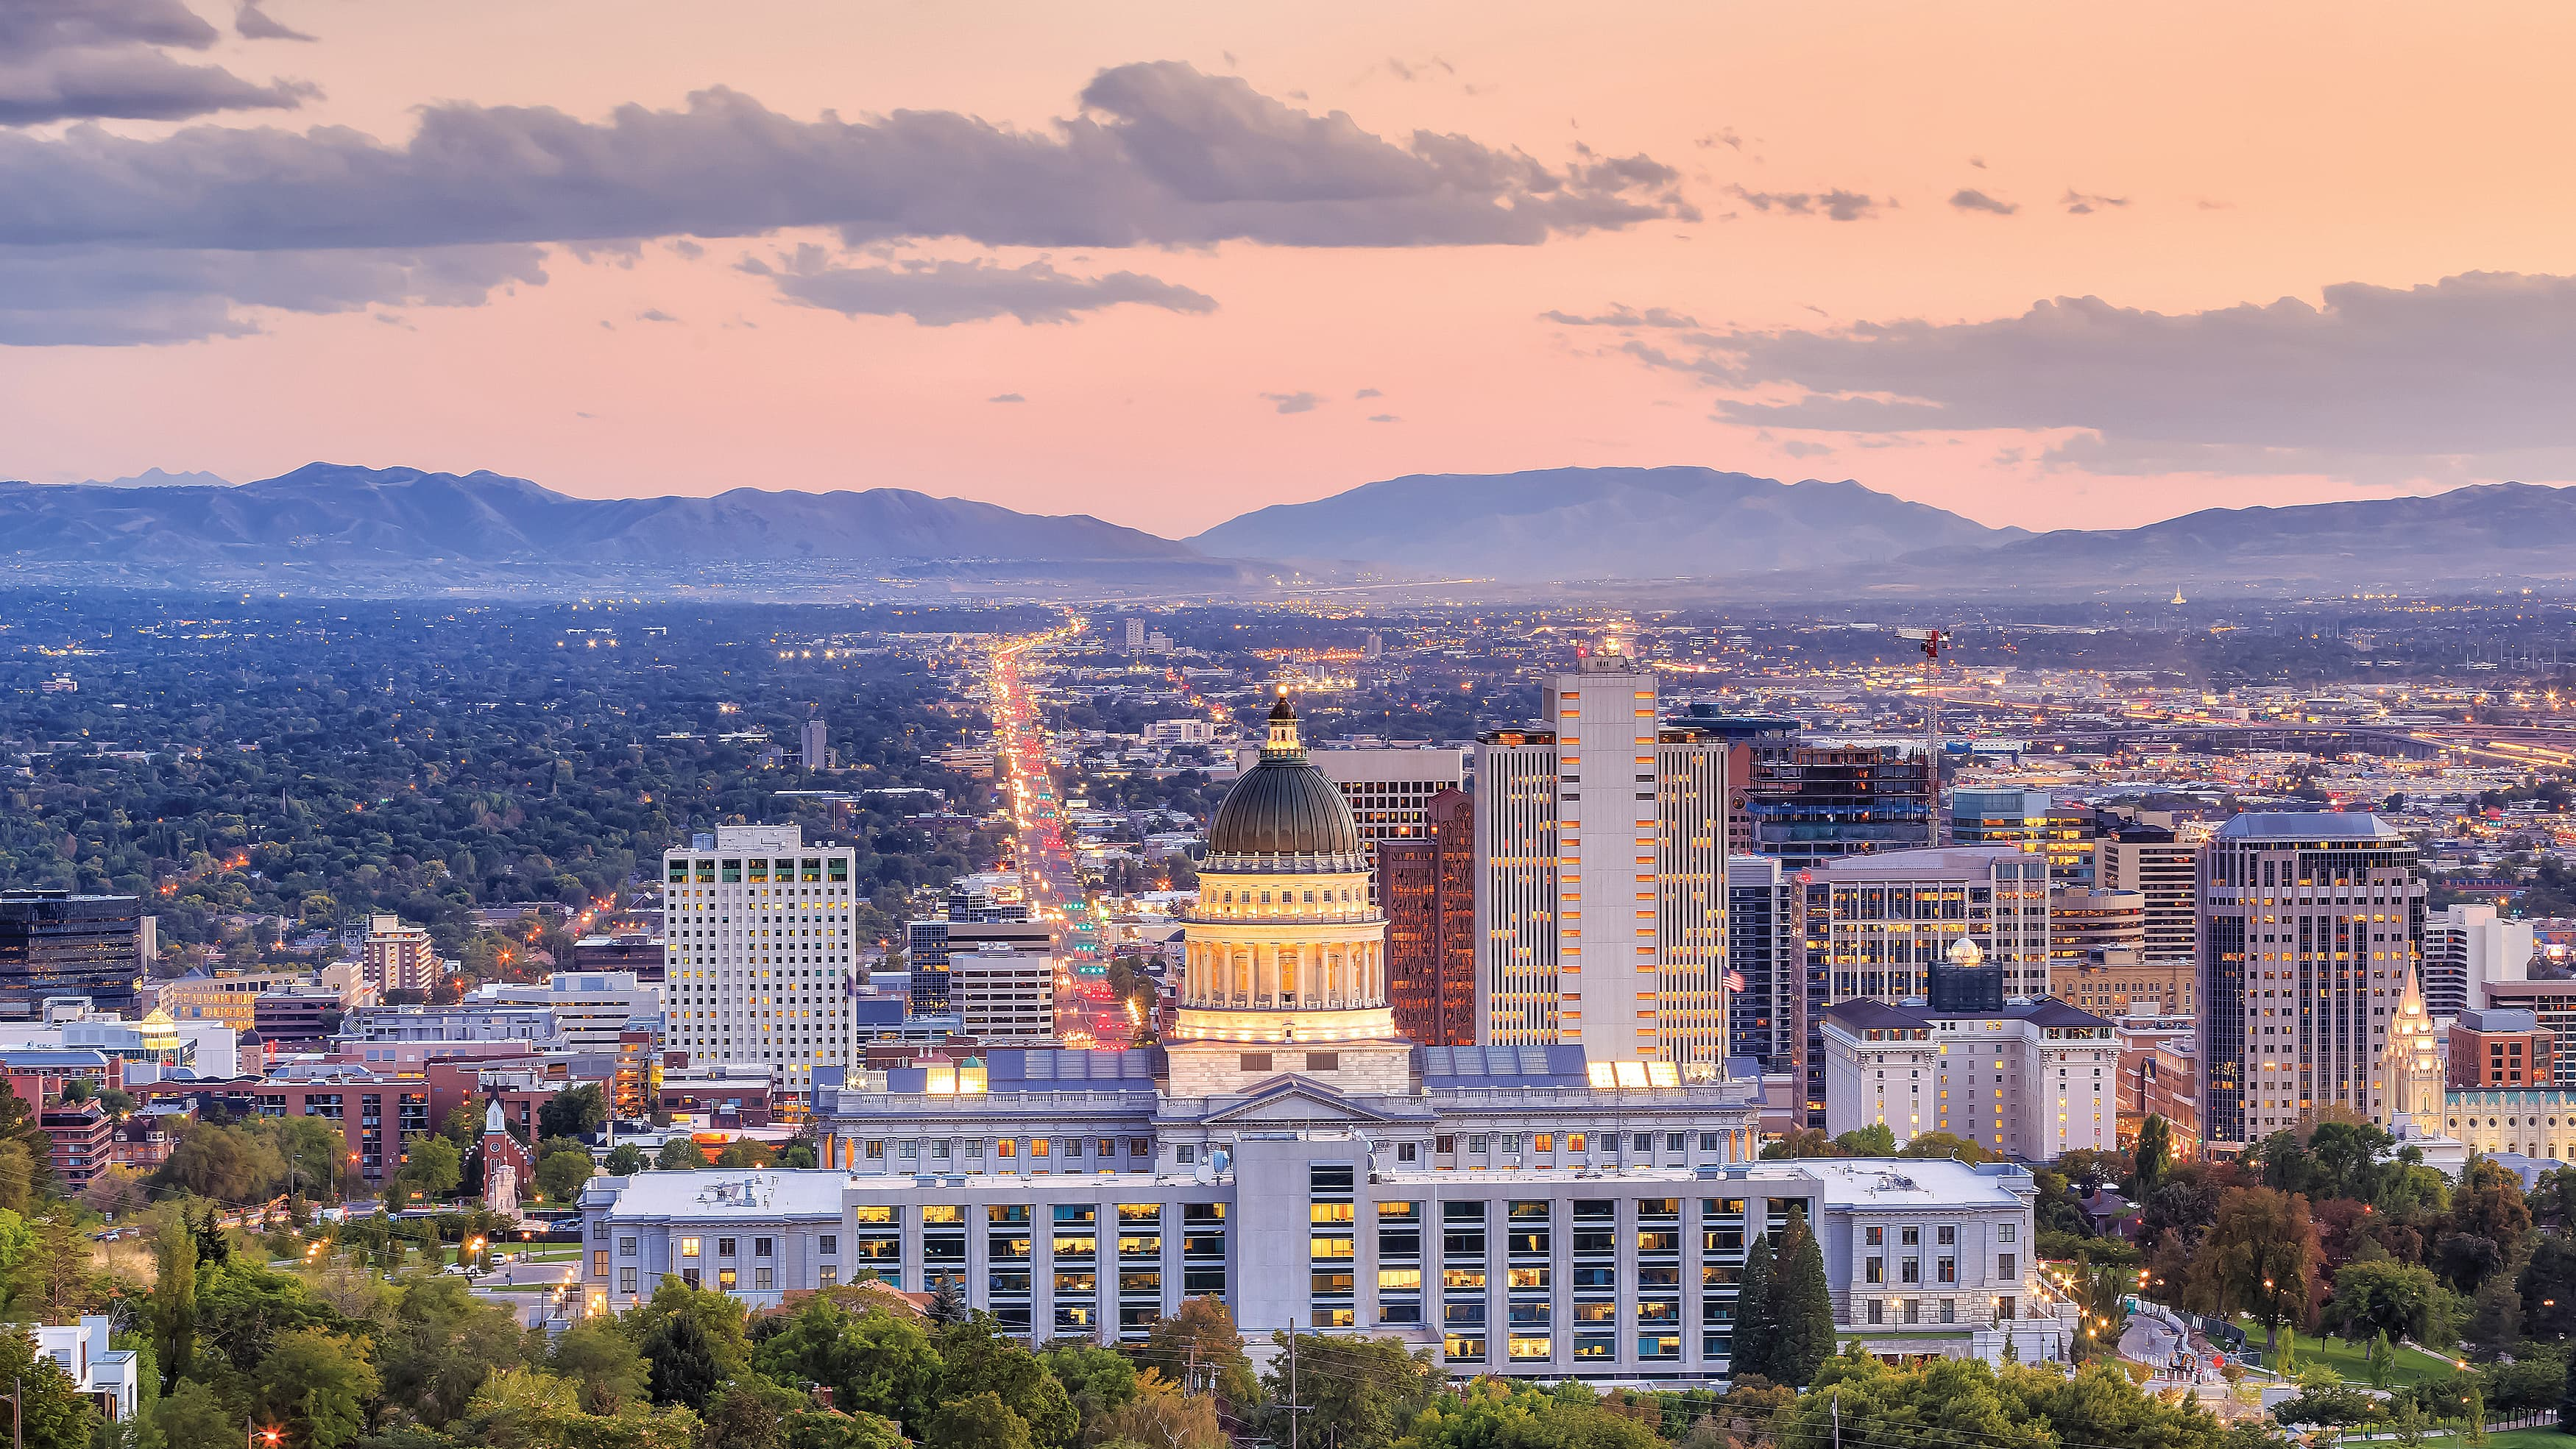 Aerial city evening view of Salt Lake City, Utah with the sun setting in the background.